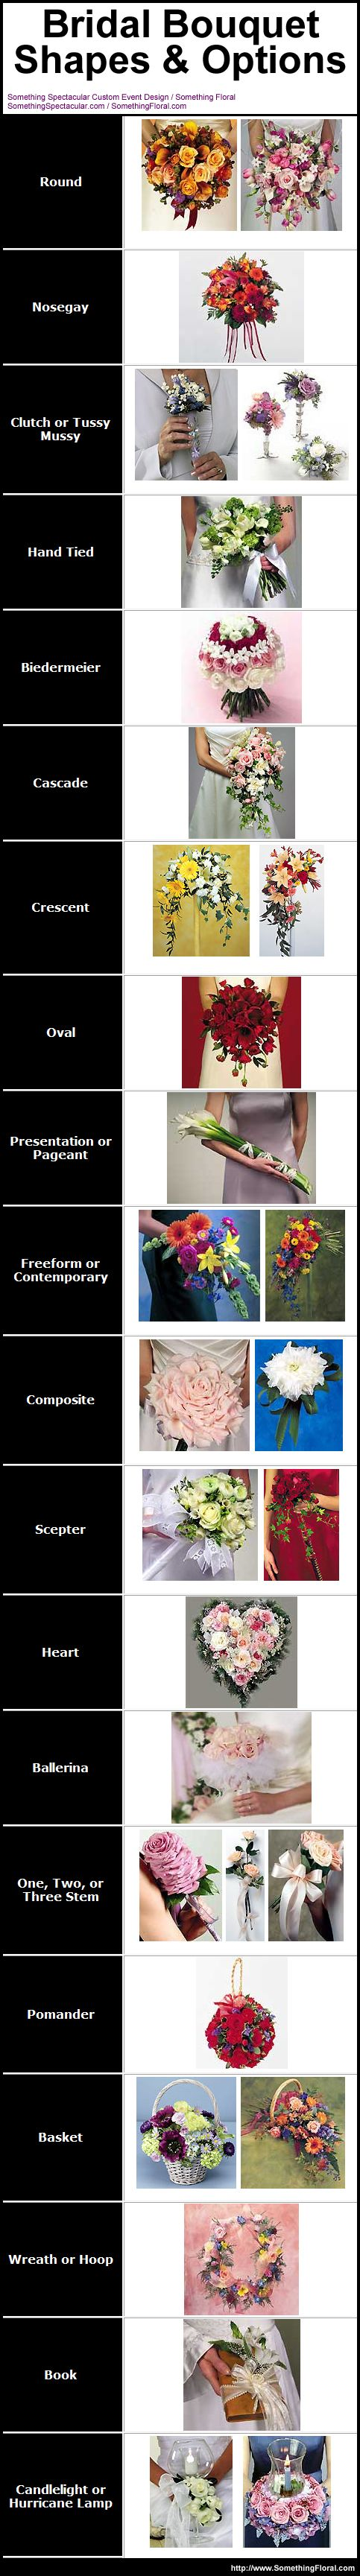 A helpful reference for brides. A pictorial list of bridal bouquet and bridesmaid bouquet shapes and options.